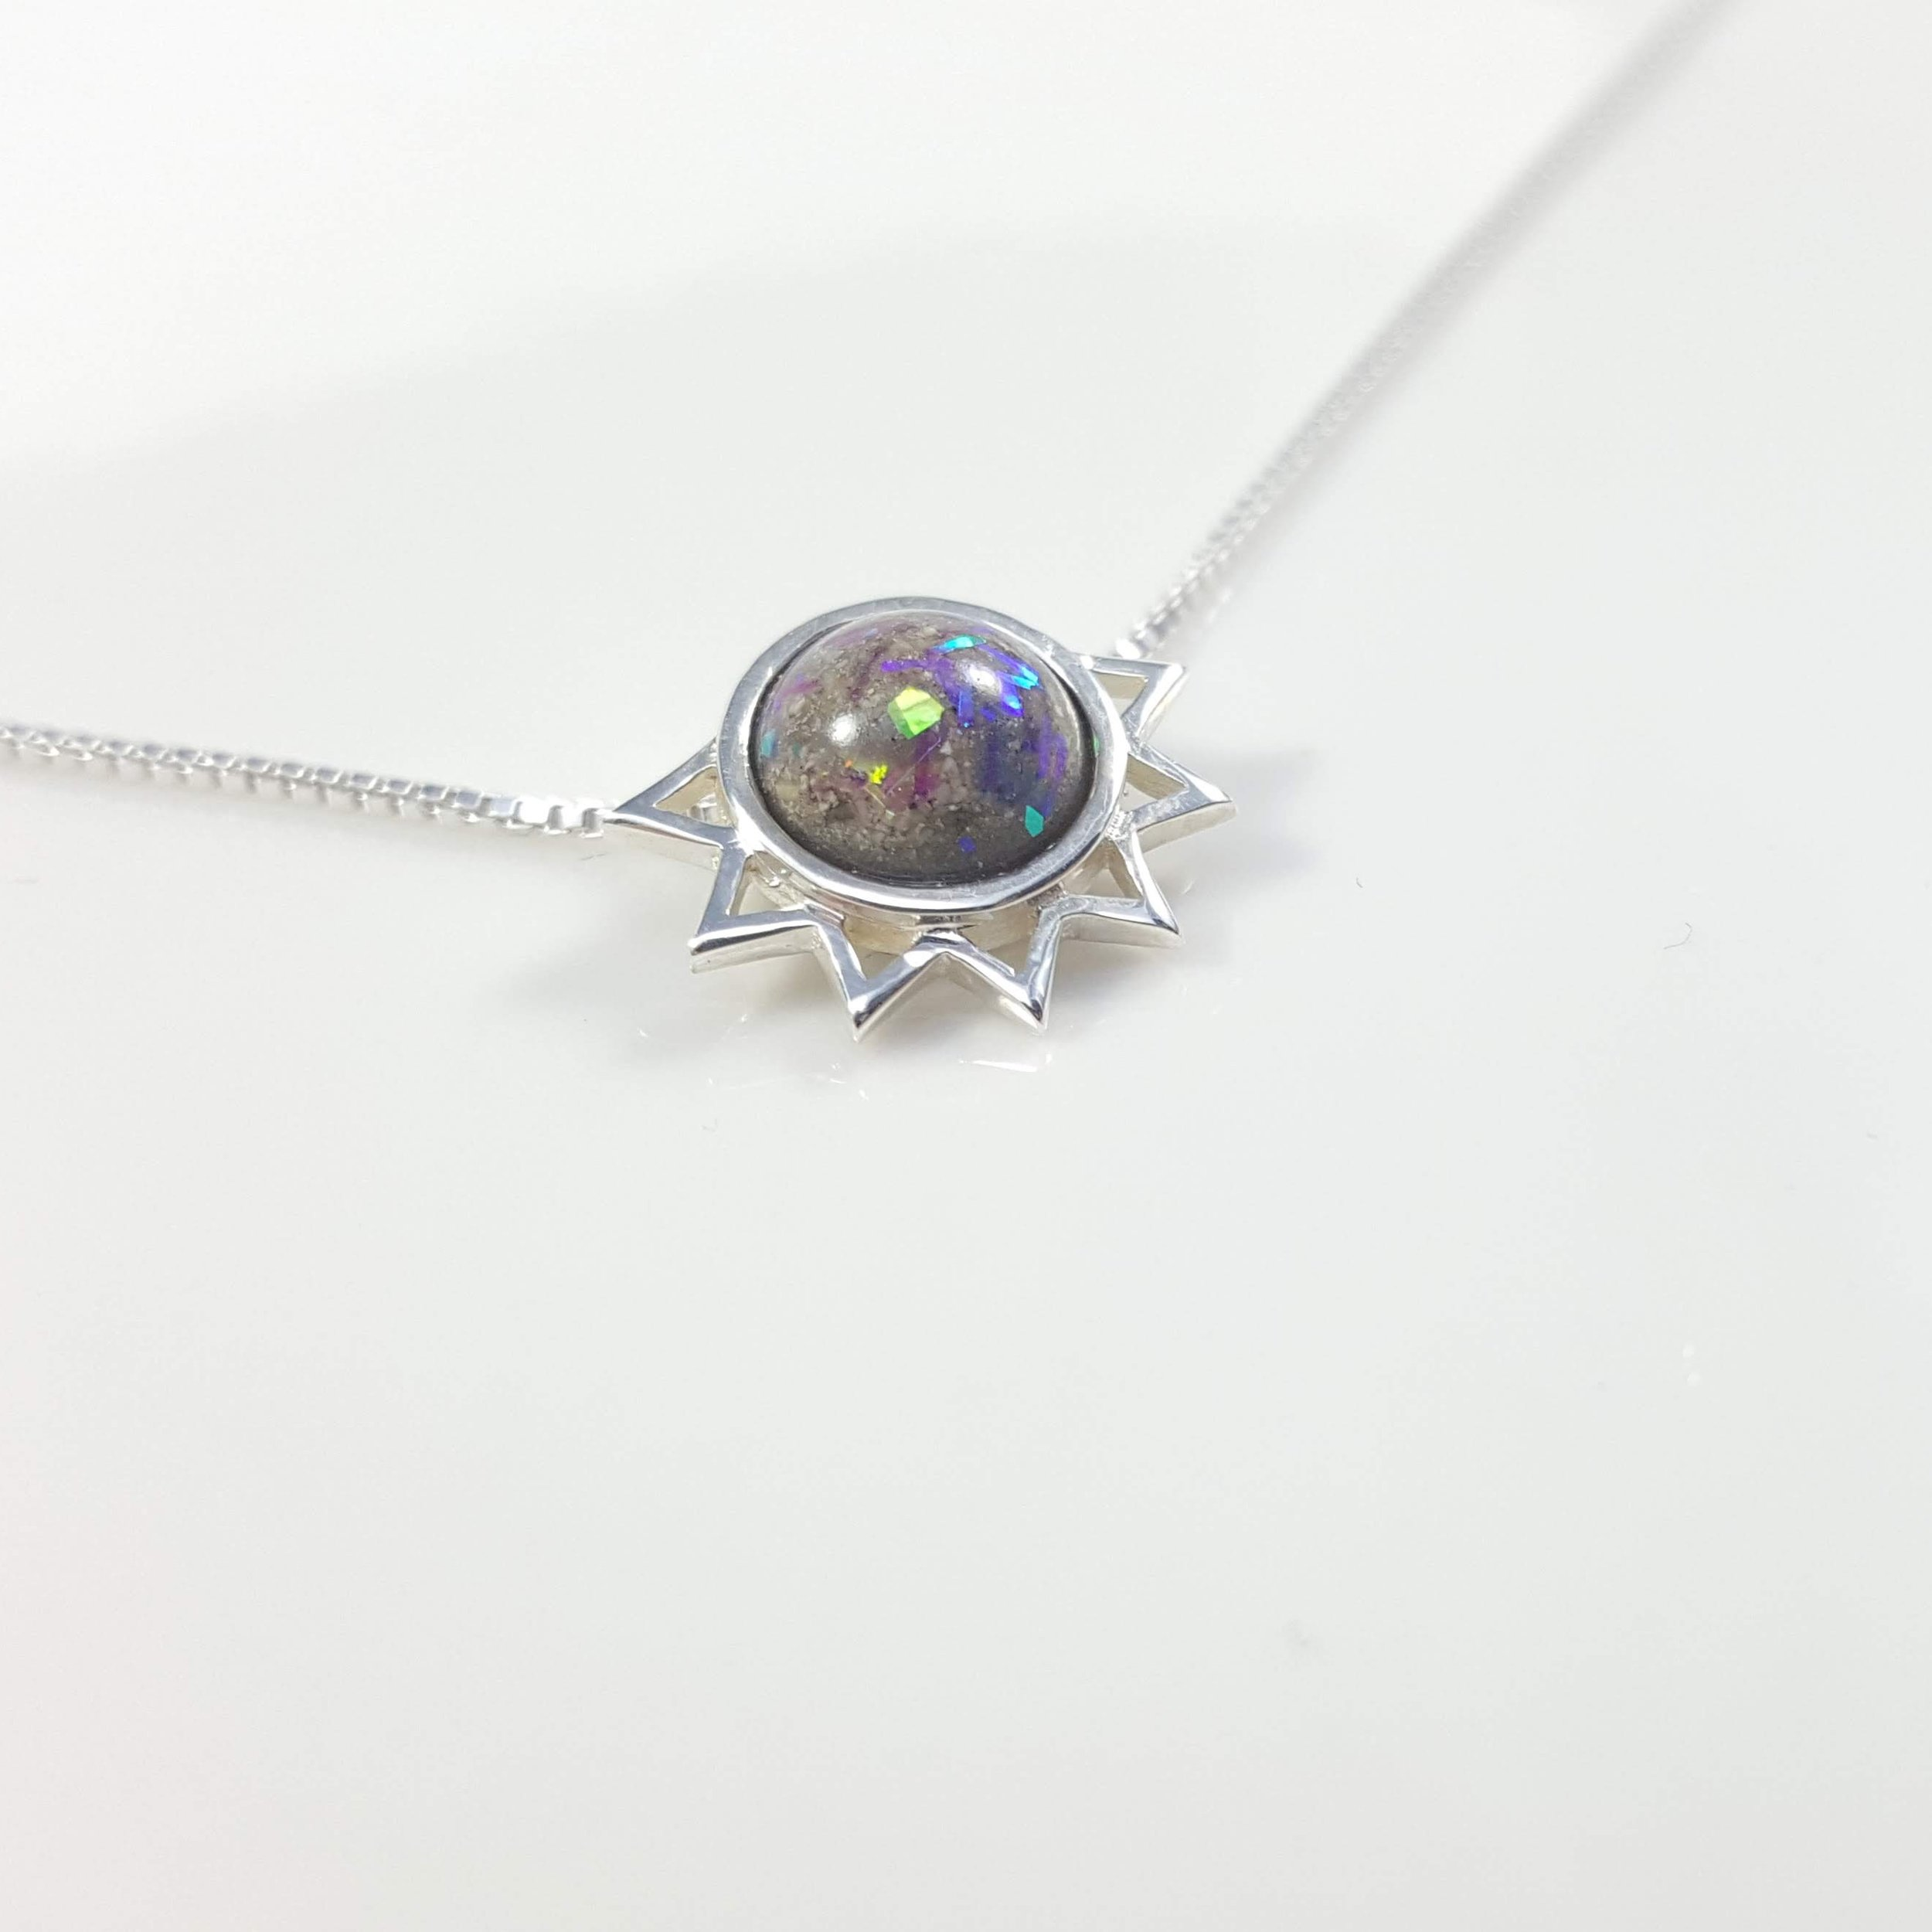 Ashes in Starburst Pendant